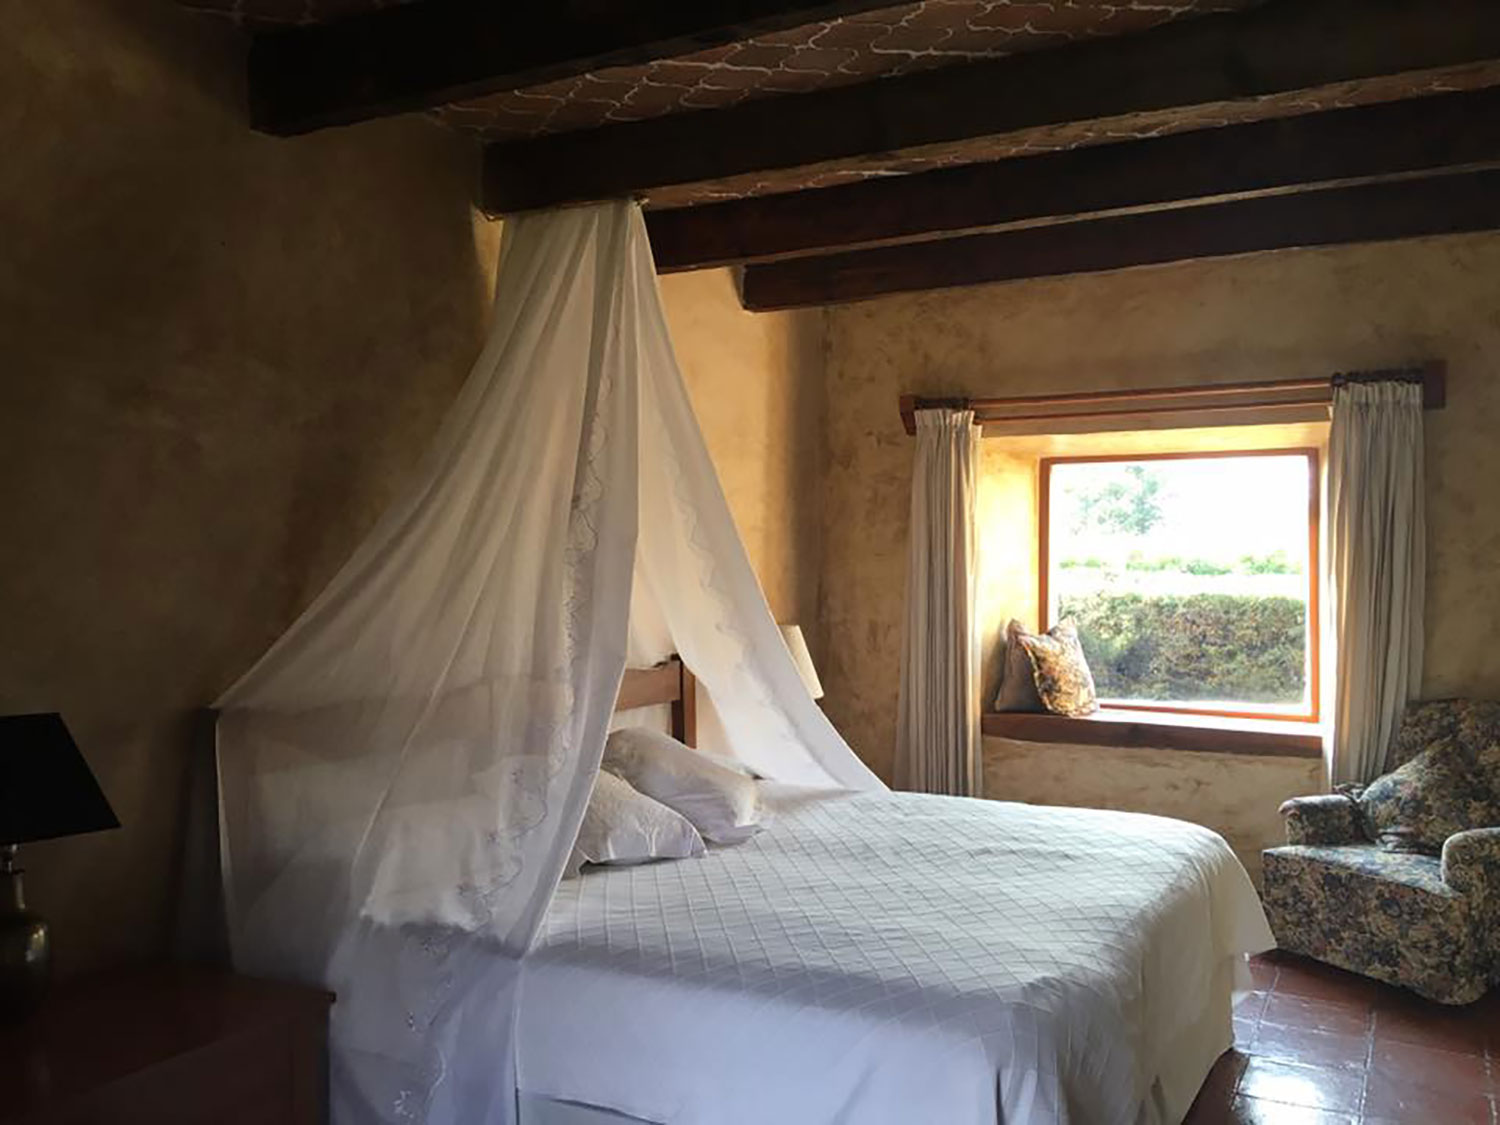 One of the hacienda's bedrooms.